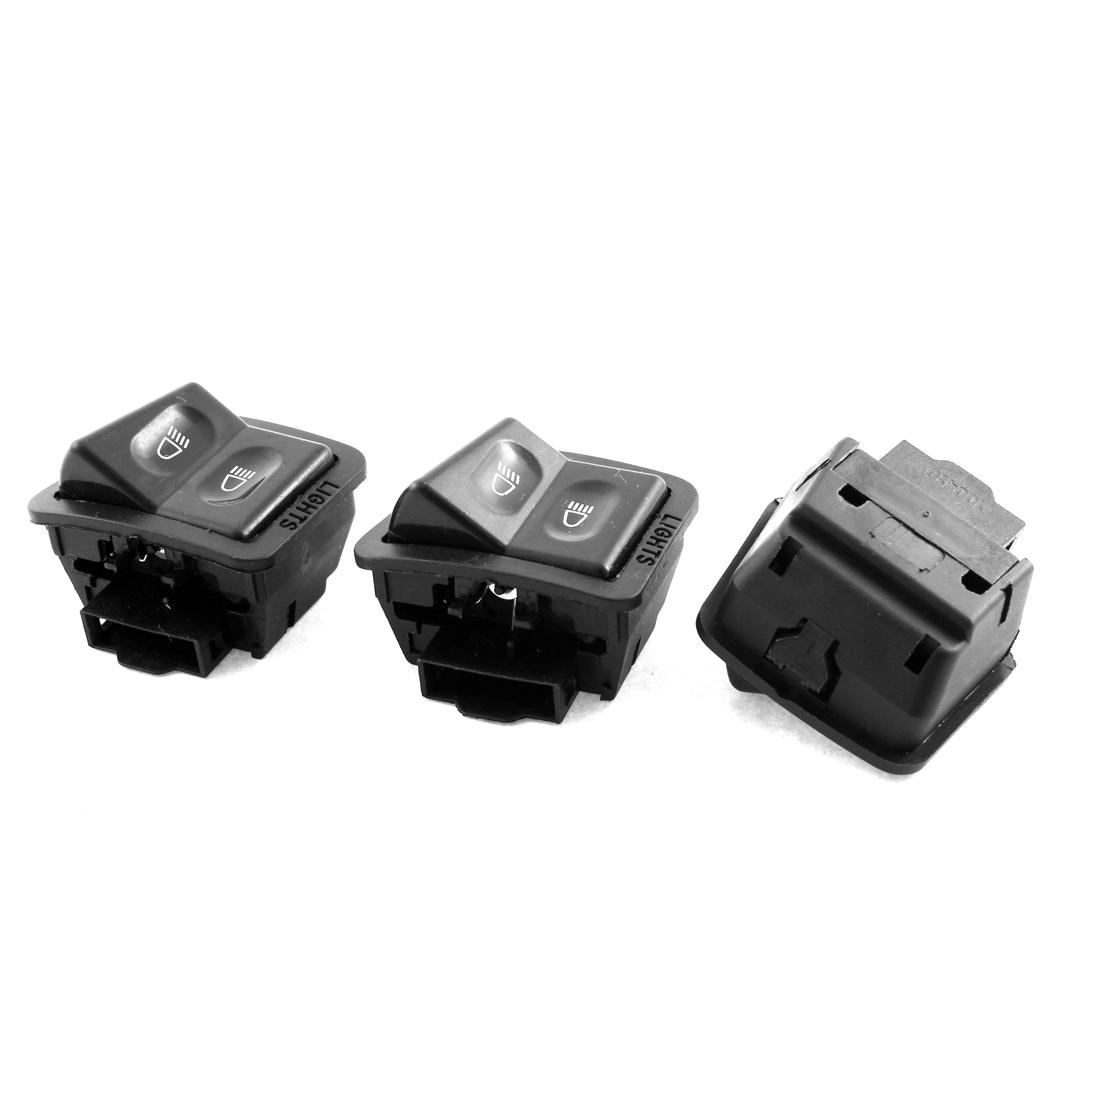 3 Pcs 2 Position Headlight Light Push Bottom Switch for Scooter Motorcycle